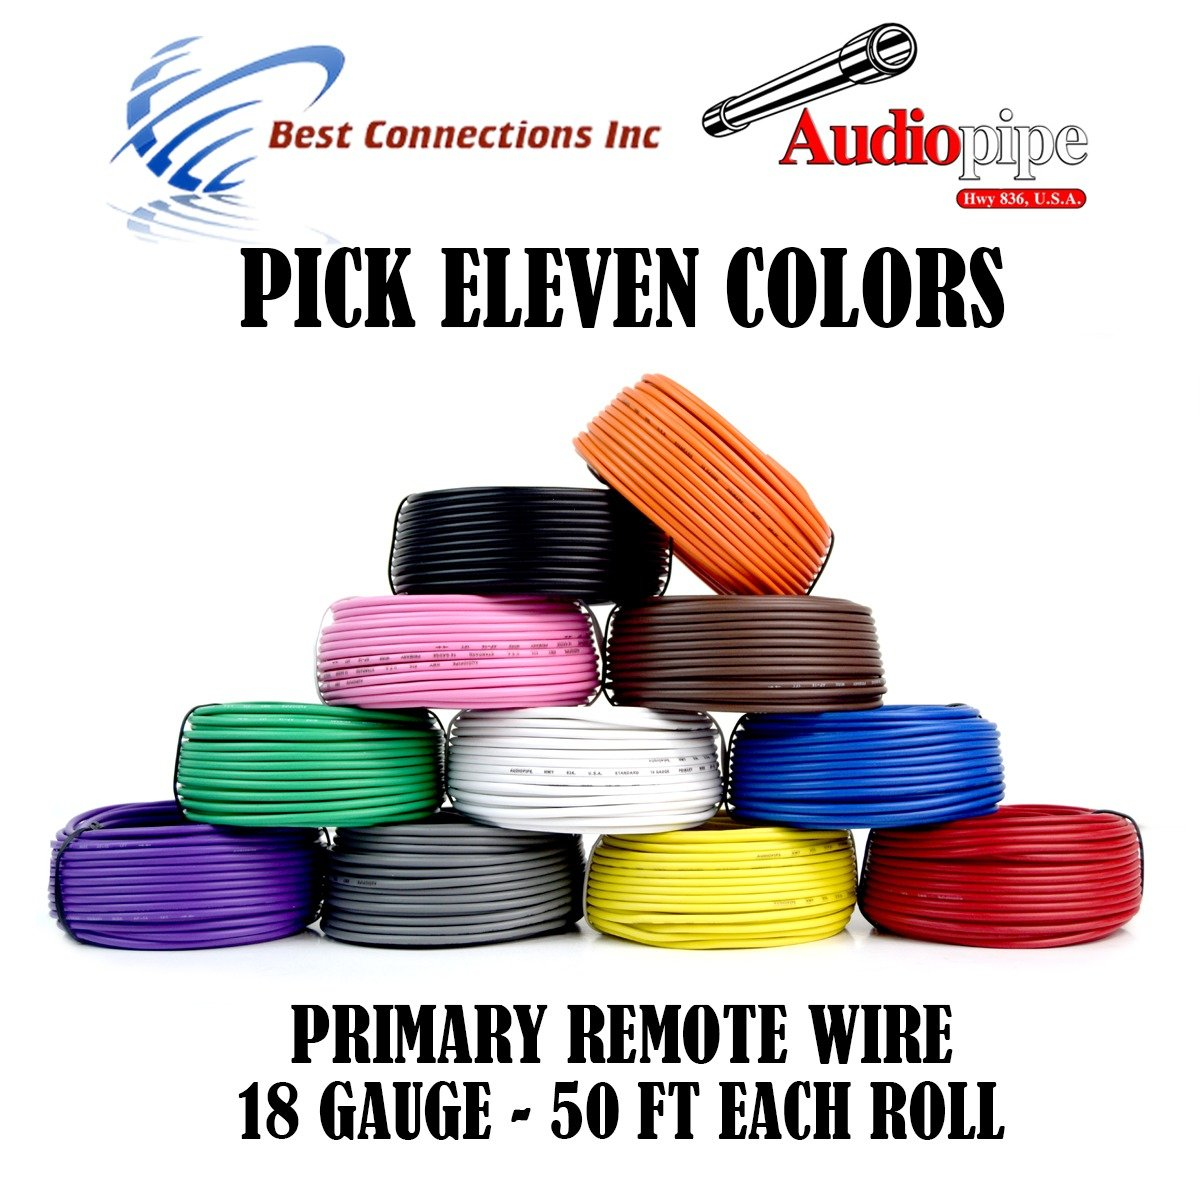 11 Rolls Audiopipe 50' Feet 18 Gauge AWG Primary Remote Wire Auto Power Cable